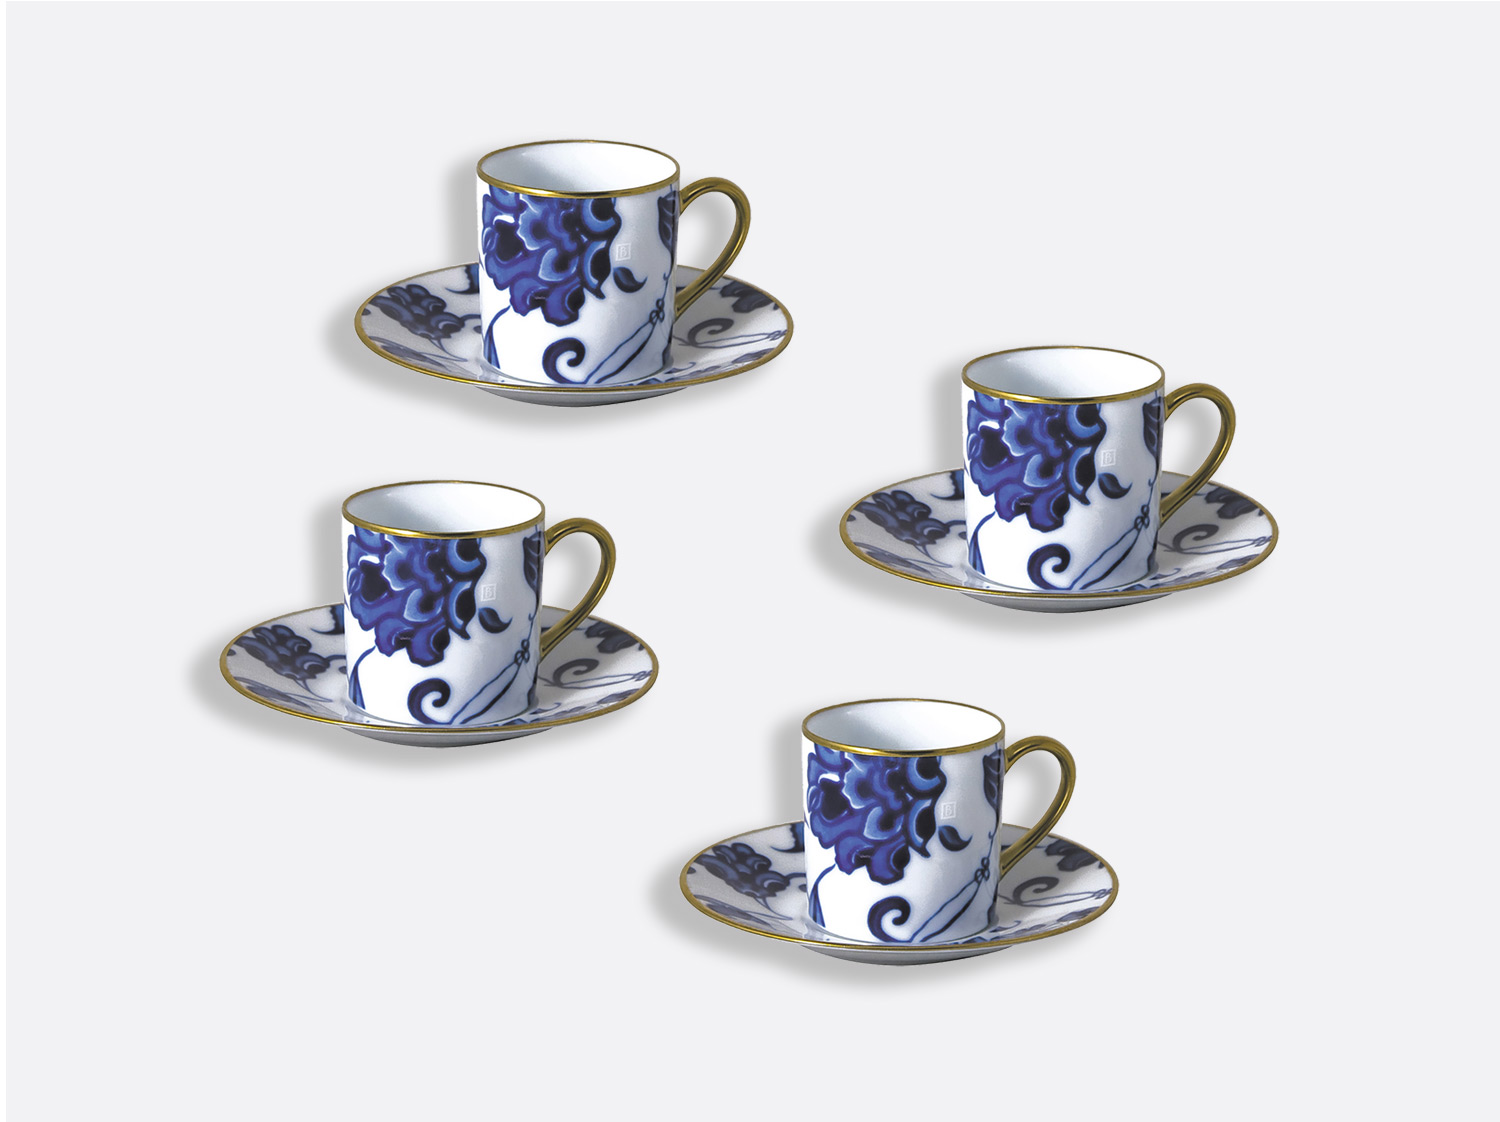 Coffret de tasses & soucoupes café 8 cl - Coffret de 4 en porcelaine de la collection Prince bleu Bernardaud